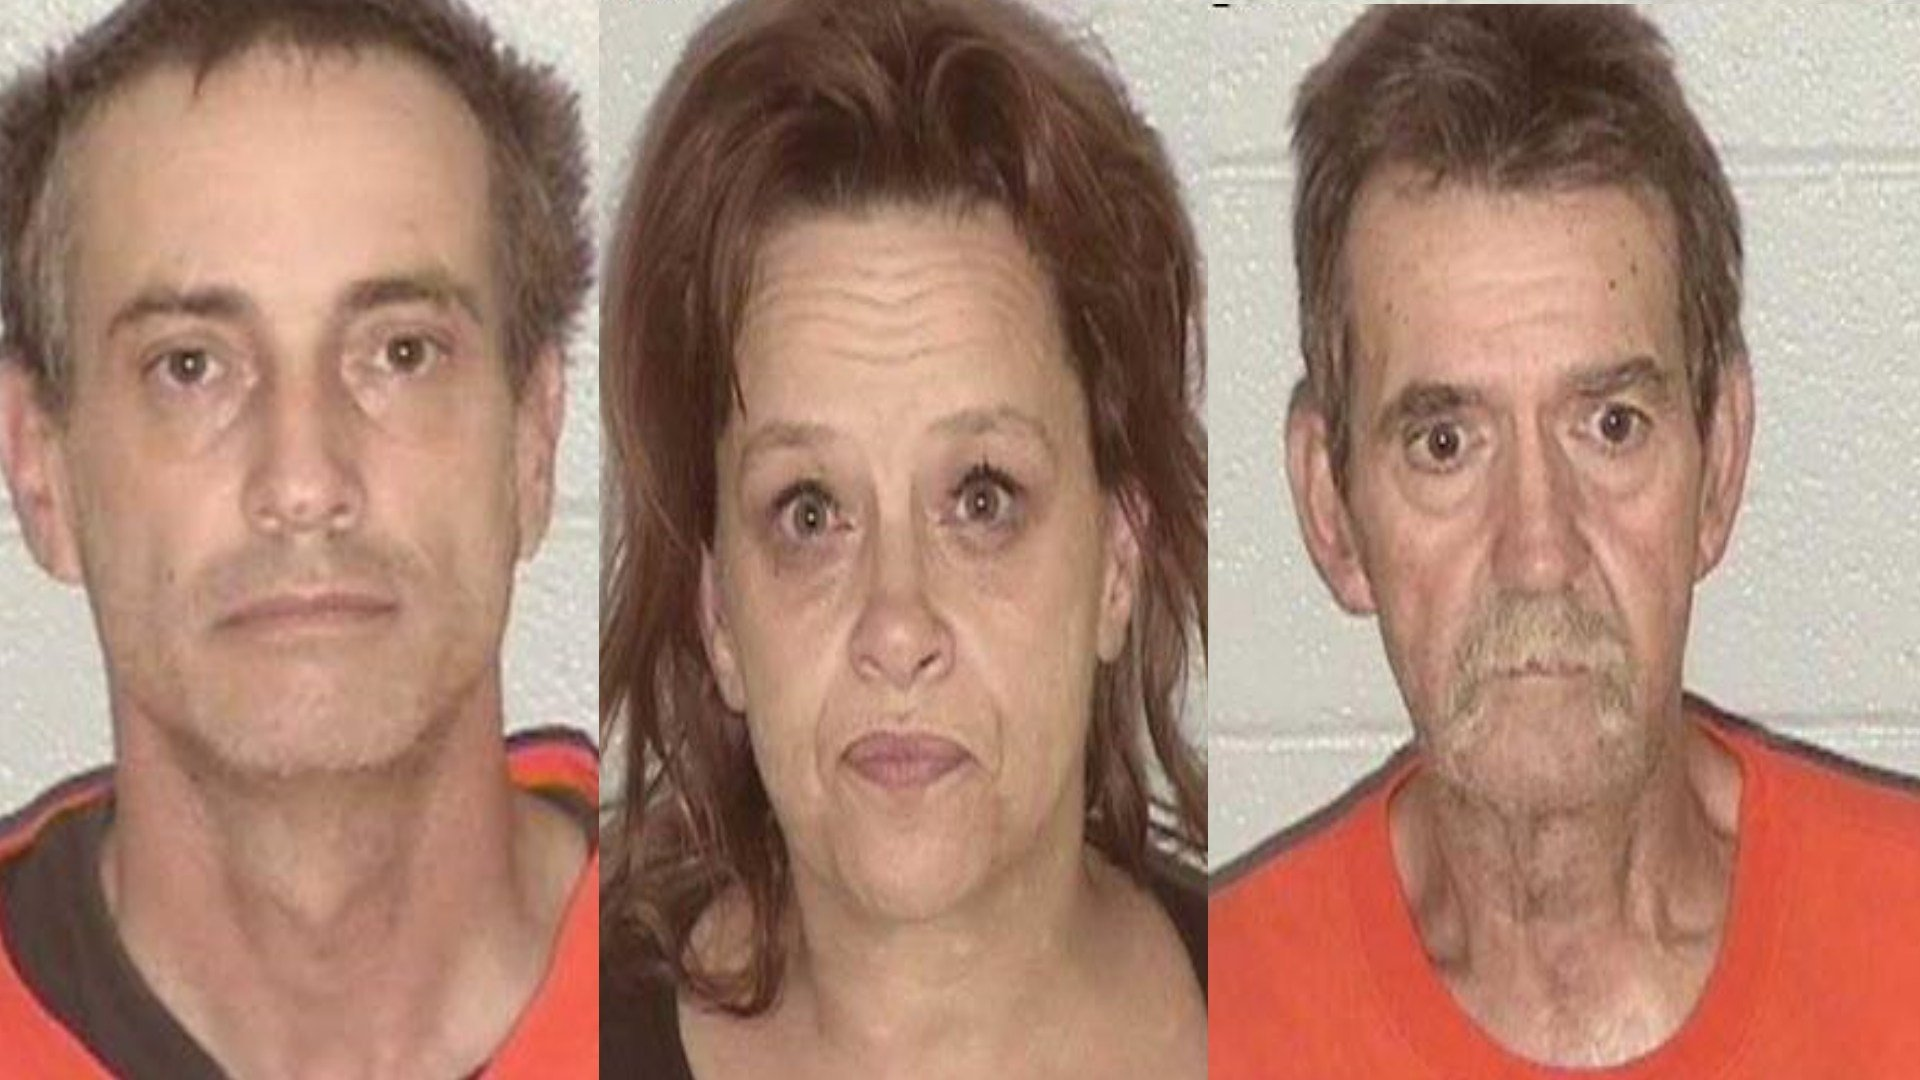 Cain Kelman, Deanna Weber, Ricky Taggart are all facing charges connected to the sex assault of a minor.